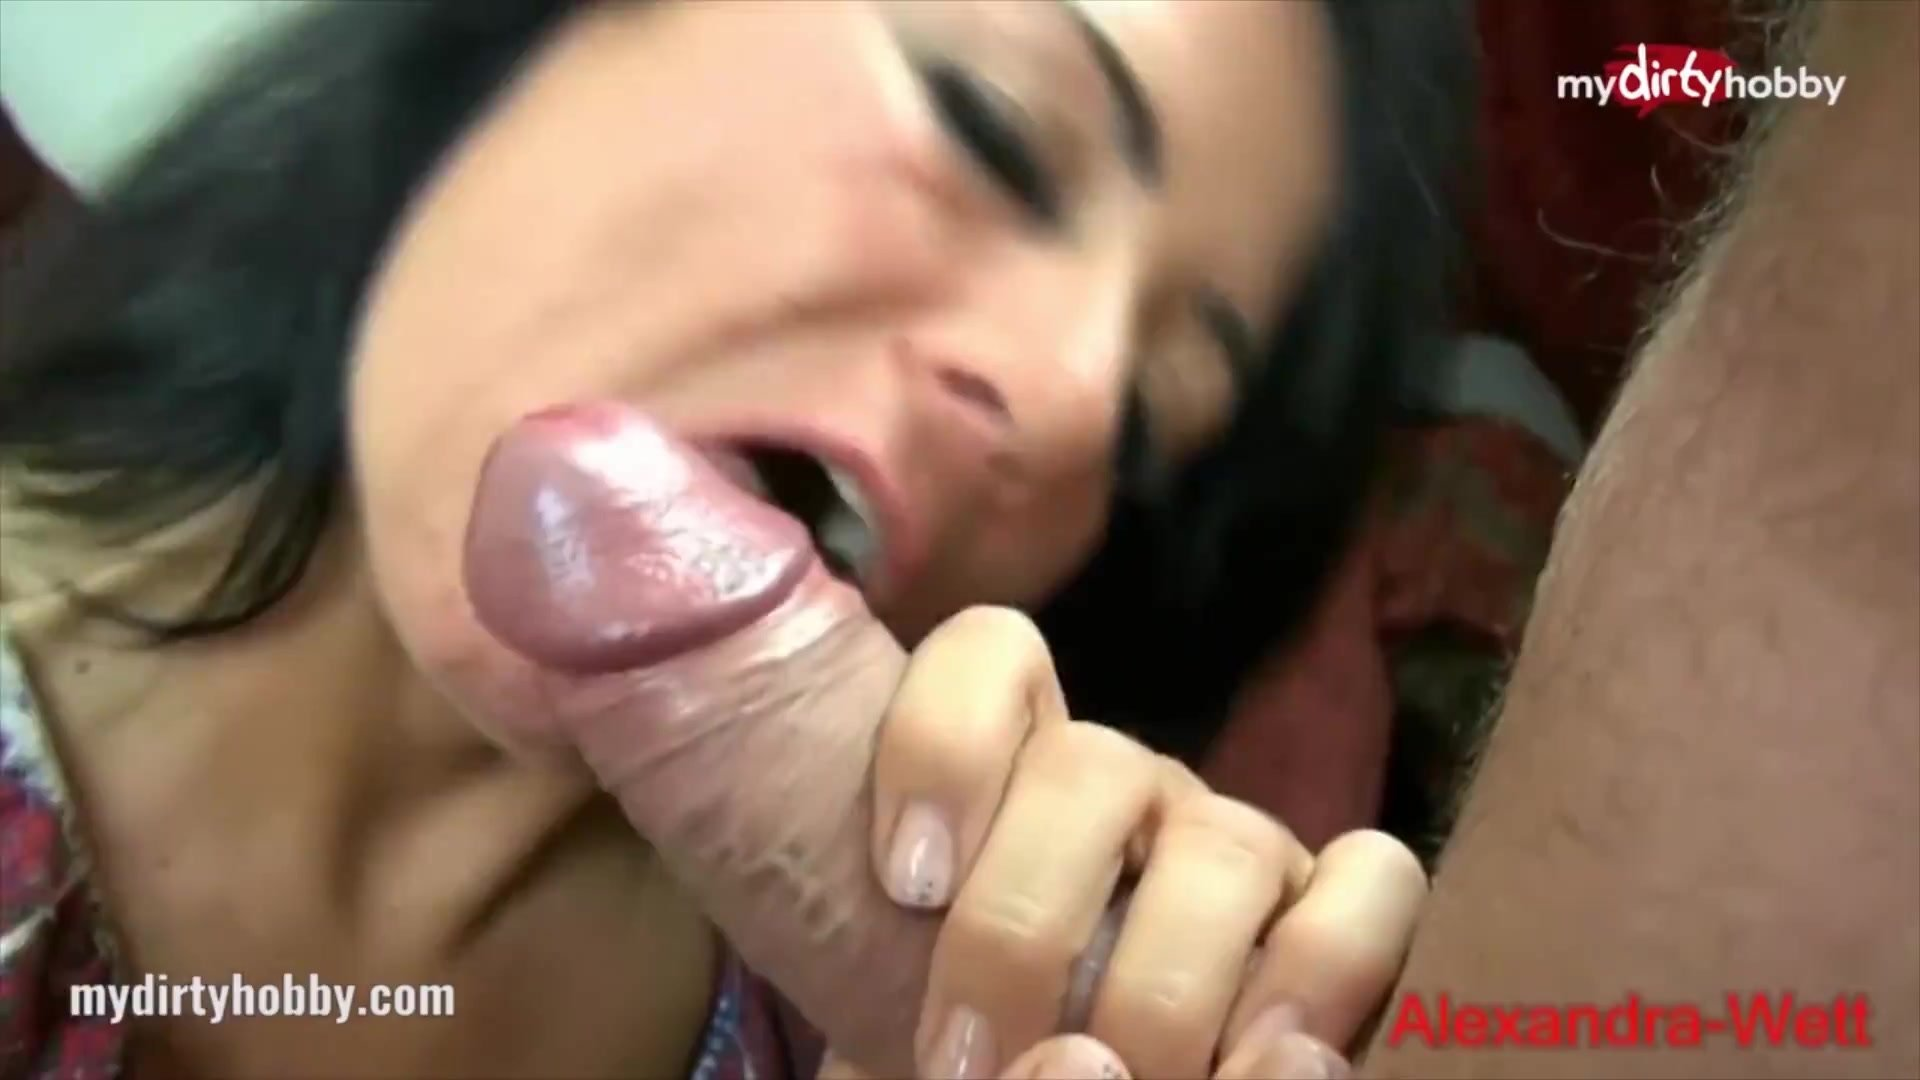 MyDirtyHobby - Cock-hungry MILF seduces a young stud